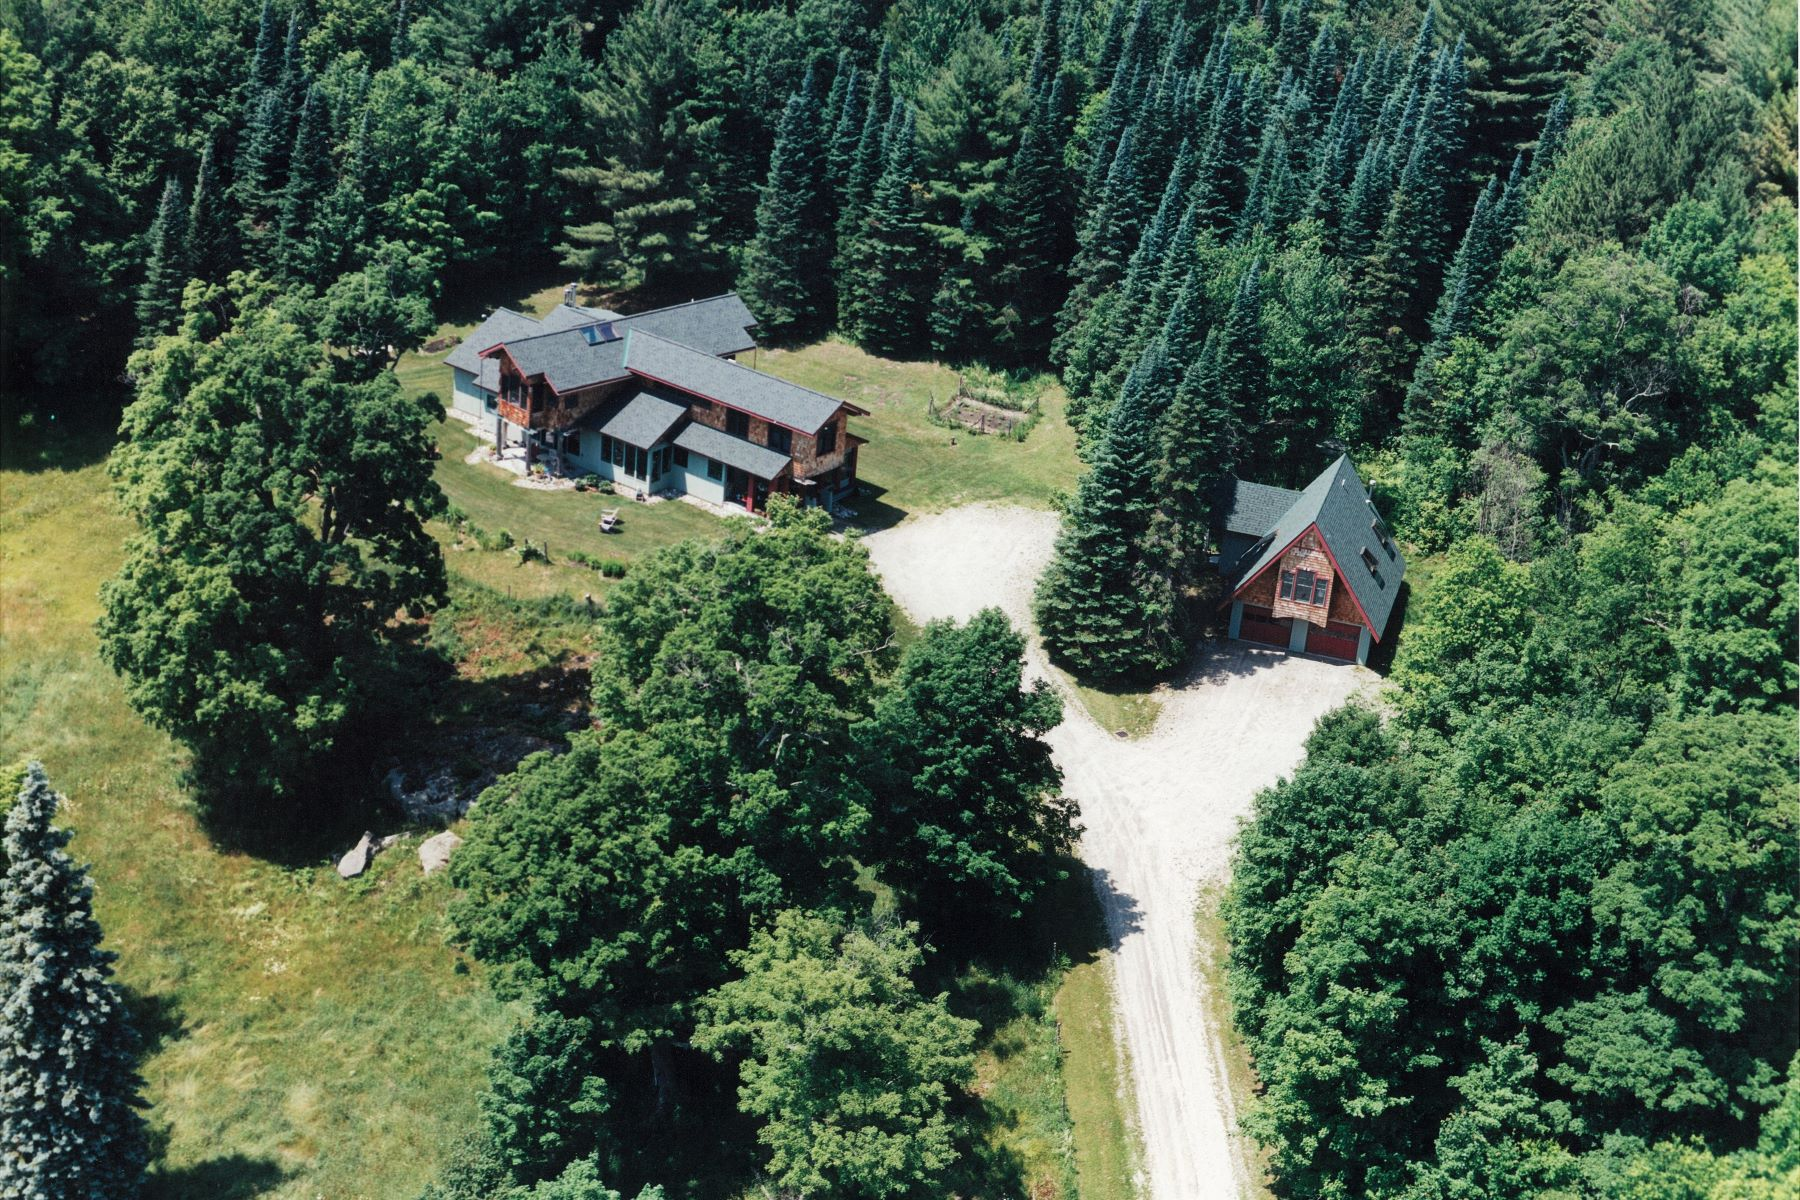 Single Family Home for Sale at Views, privacy, yoga room, library 419 North Hollow Rd Rochester, Vermont, 05767 United States